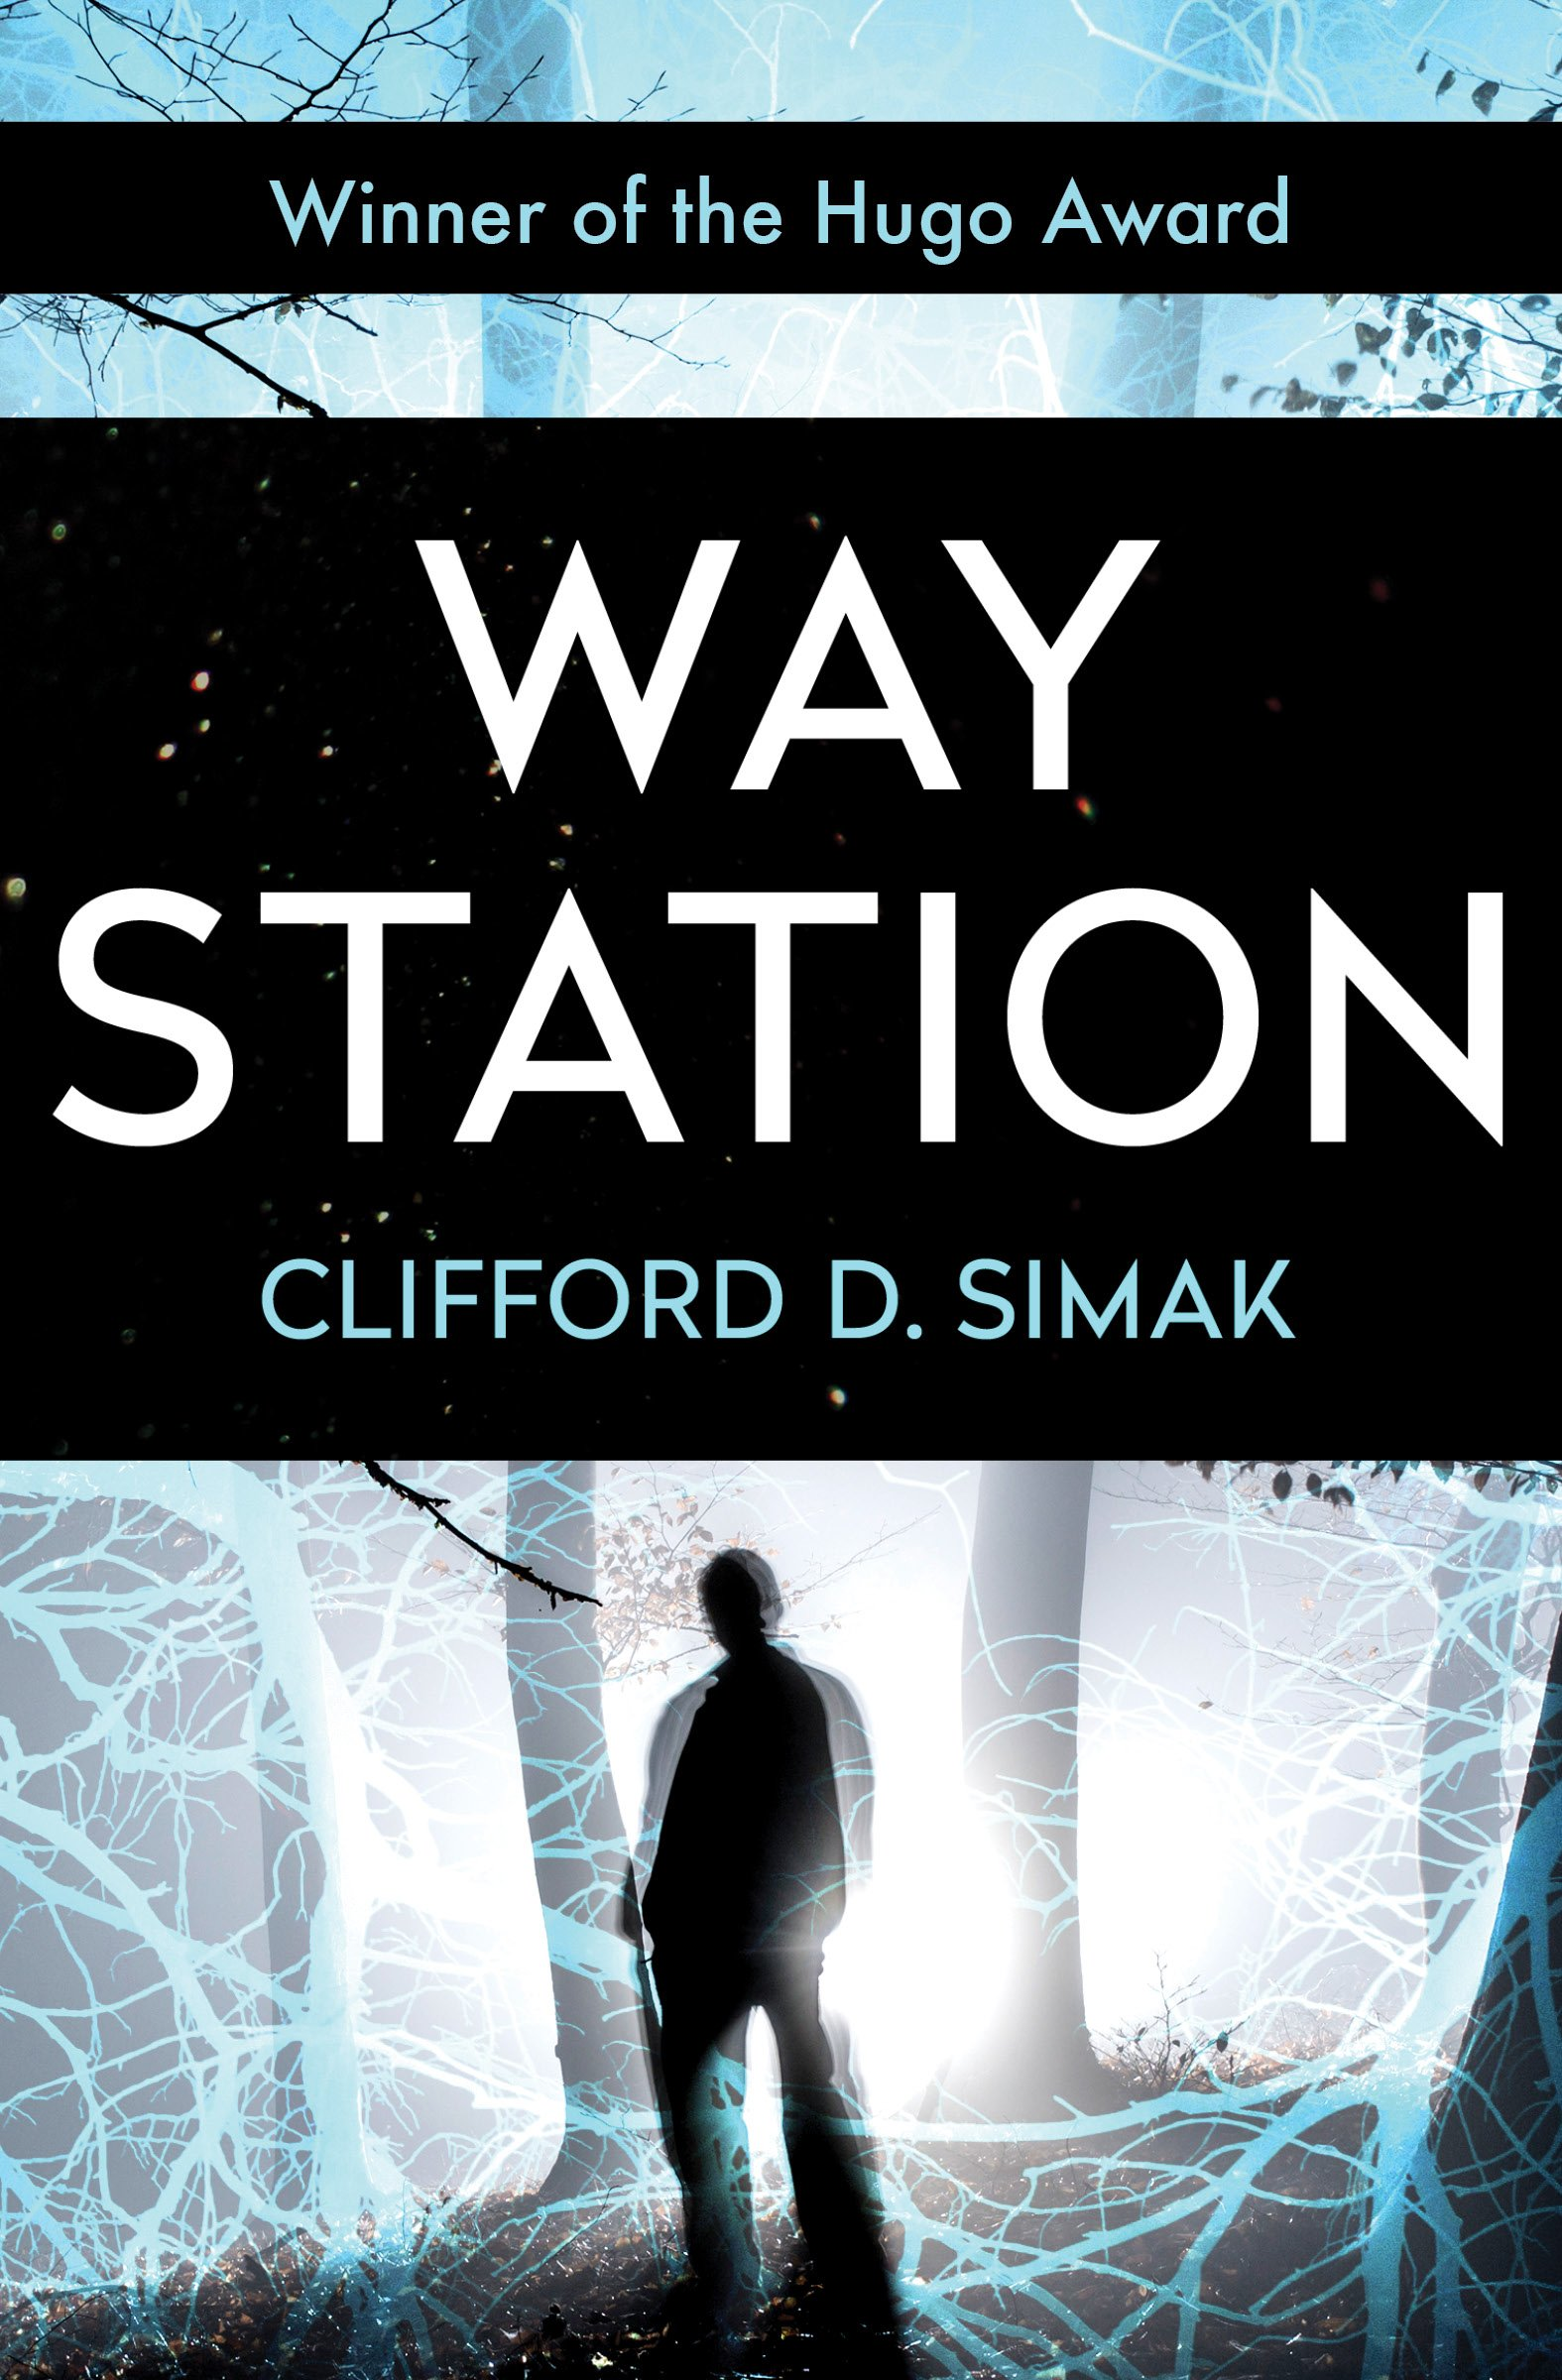 Way Station Clifford D Simak